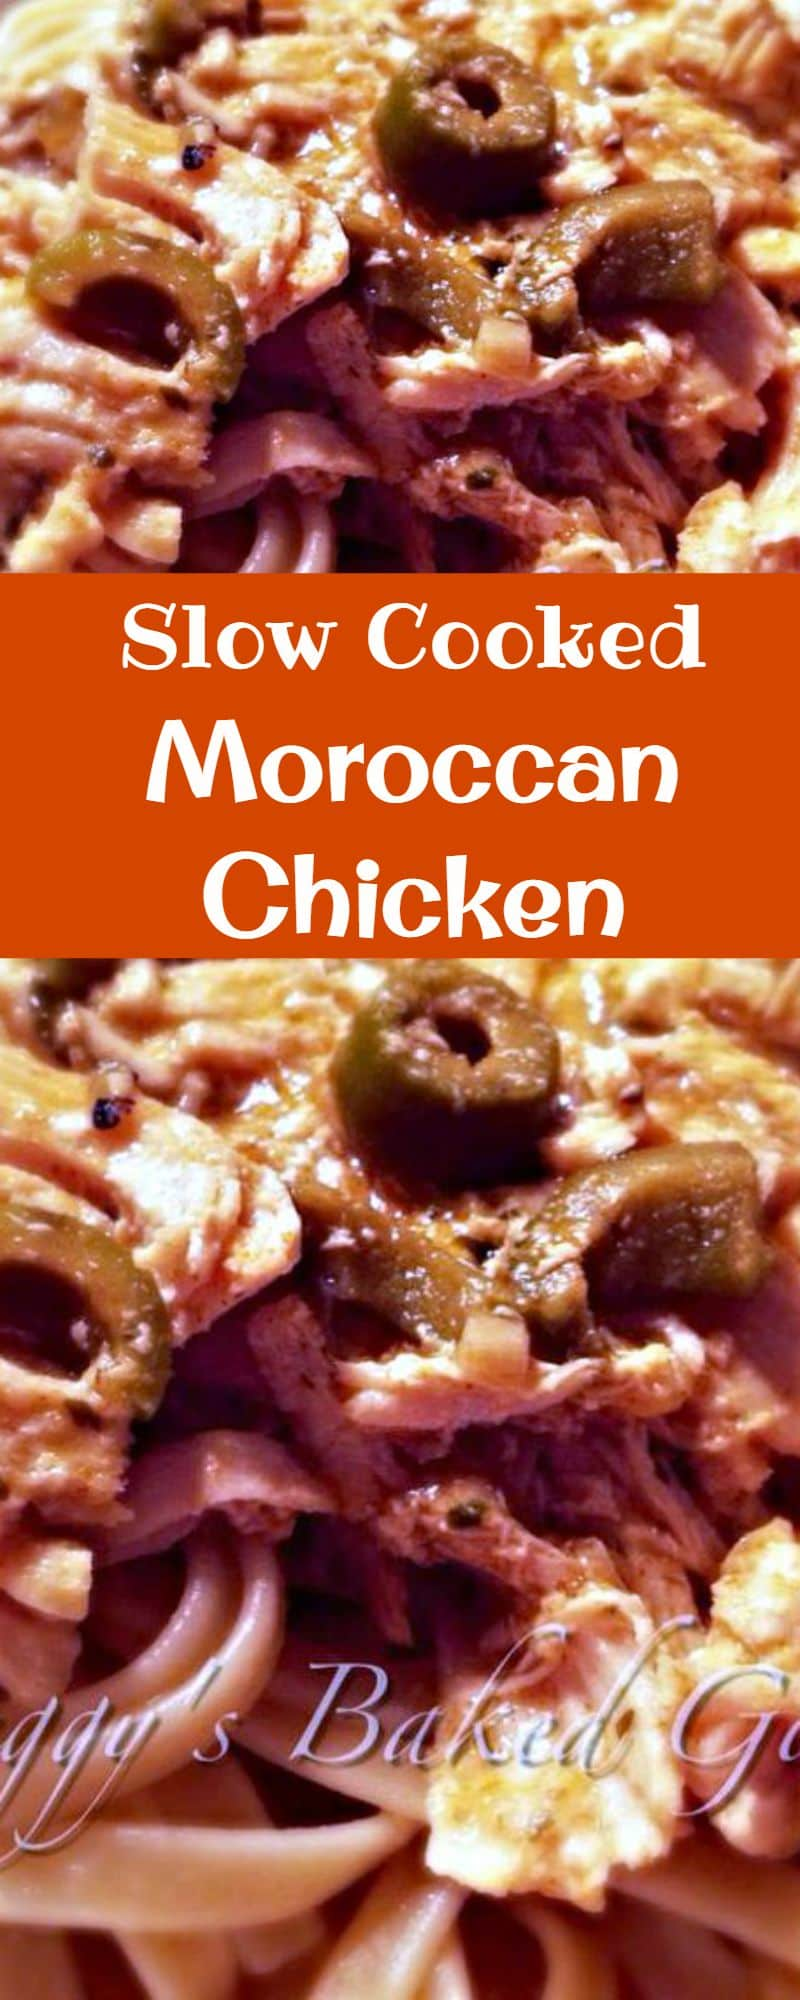 Slow Cooked Moroccan Chicken | Lovefoodies